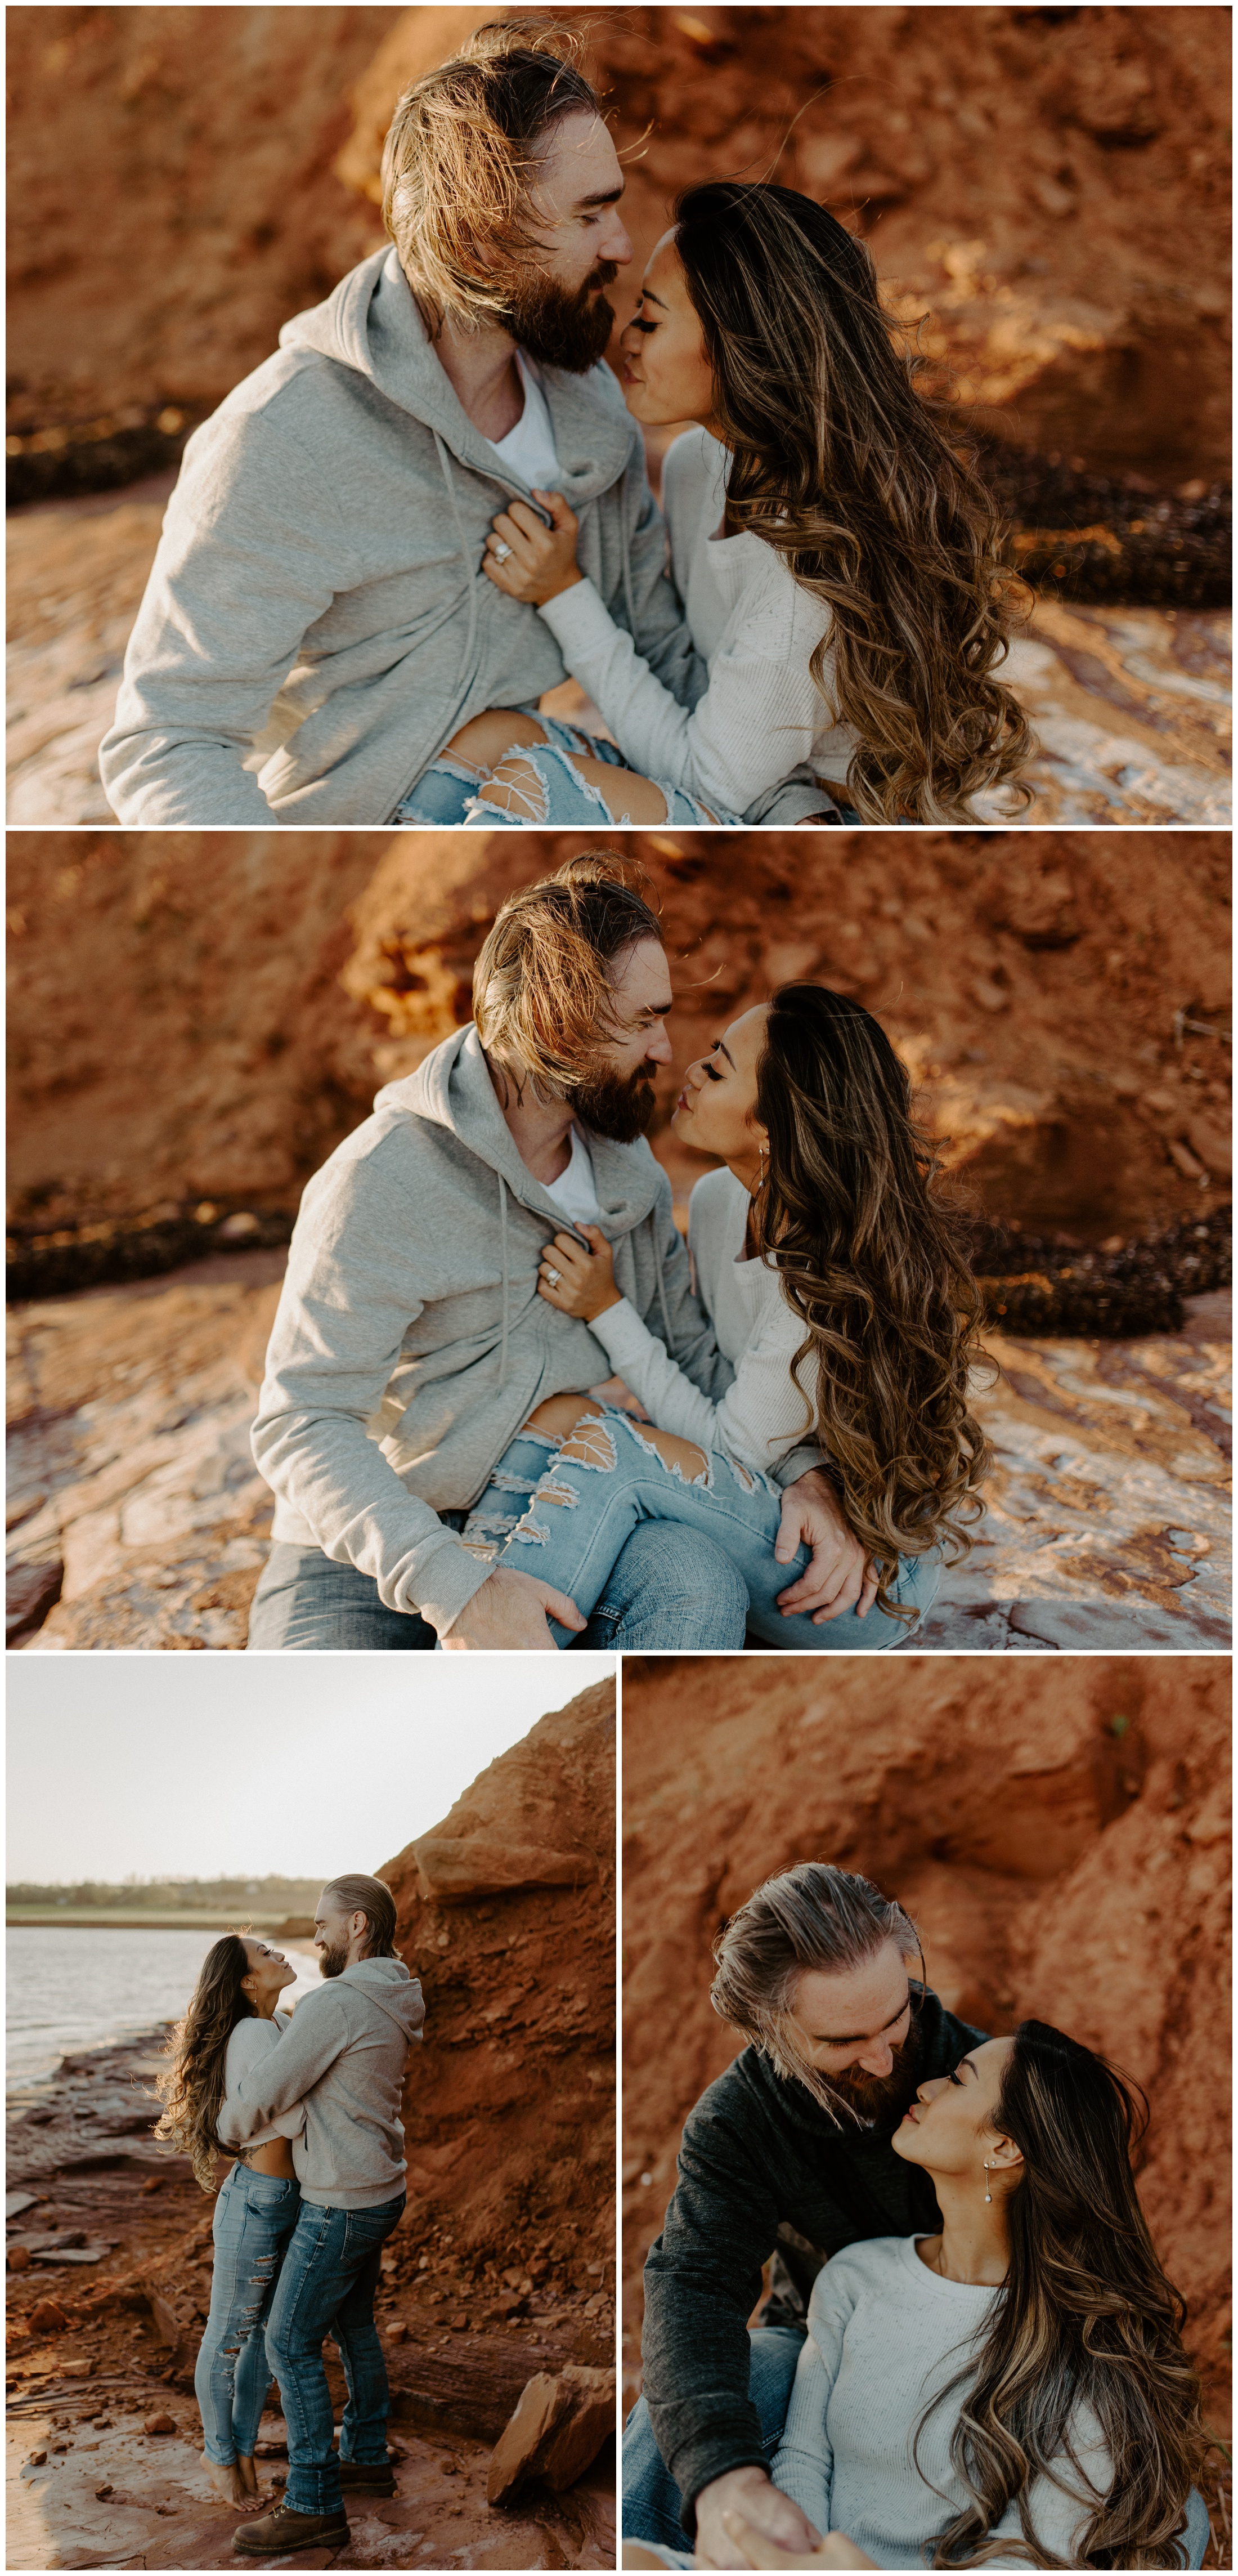 Red Sand Beach Engagements On Prince Edward Island at Sunset | Jessica Heron Images_0010.jpg